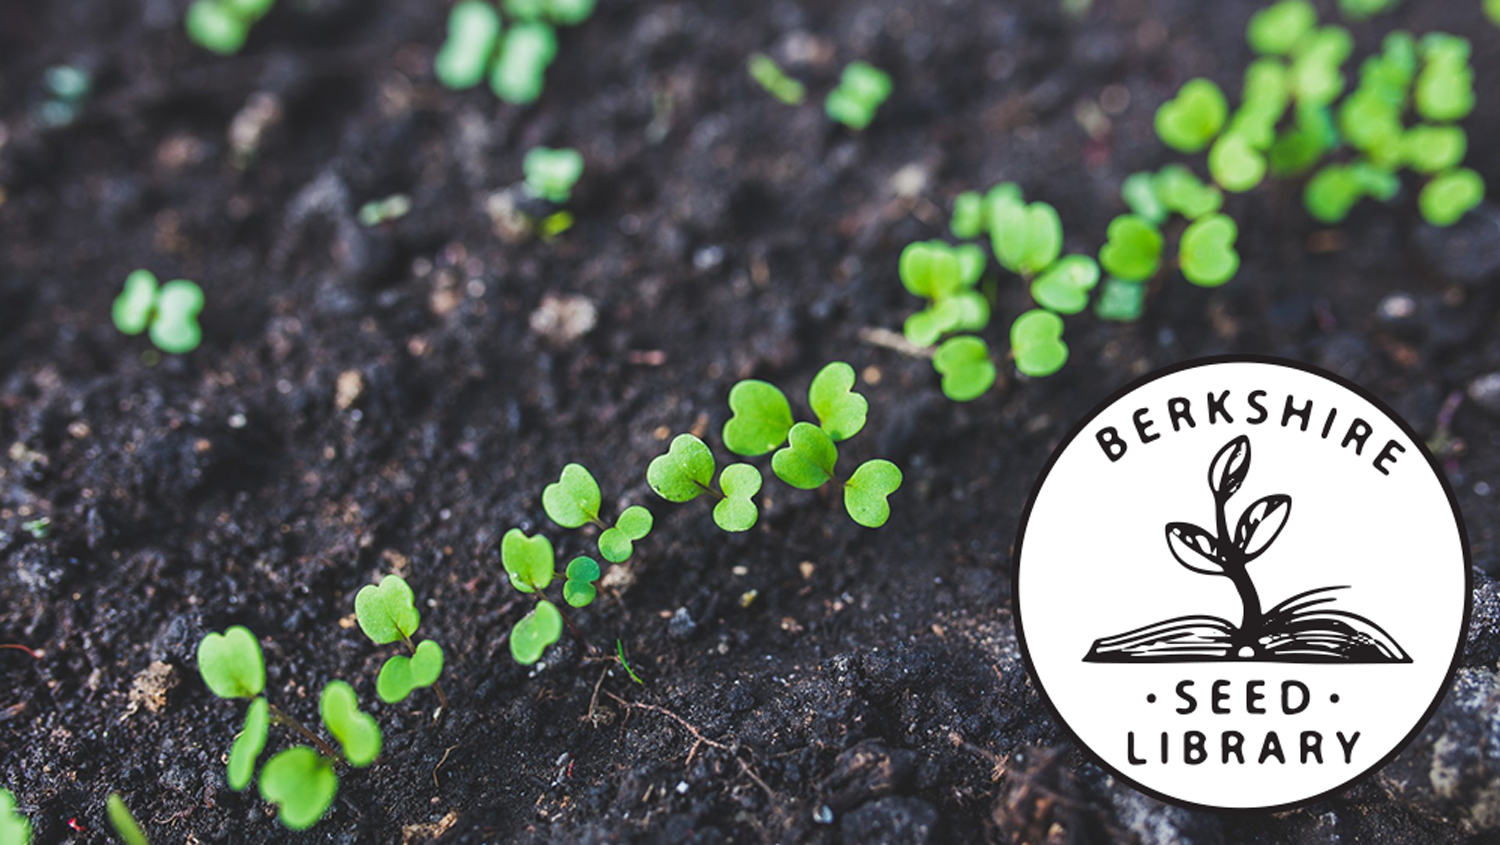 Seedlings spouting in soil with Berkshire Seed Library logo